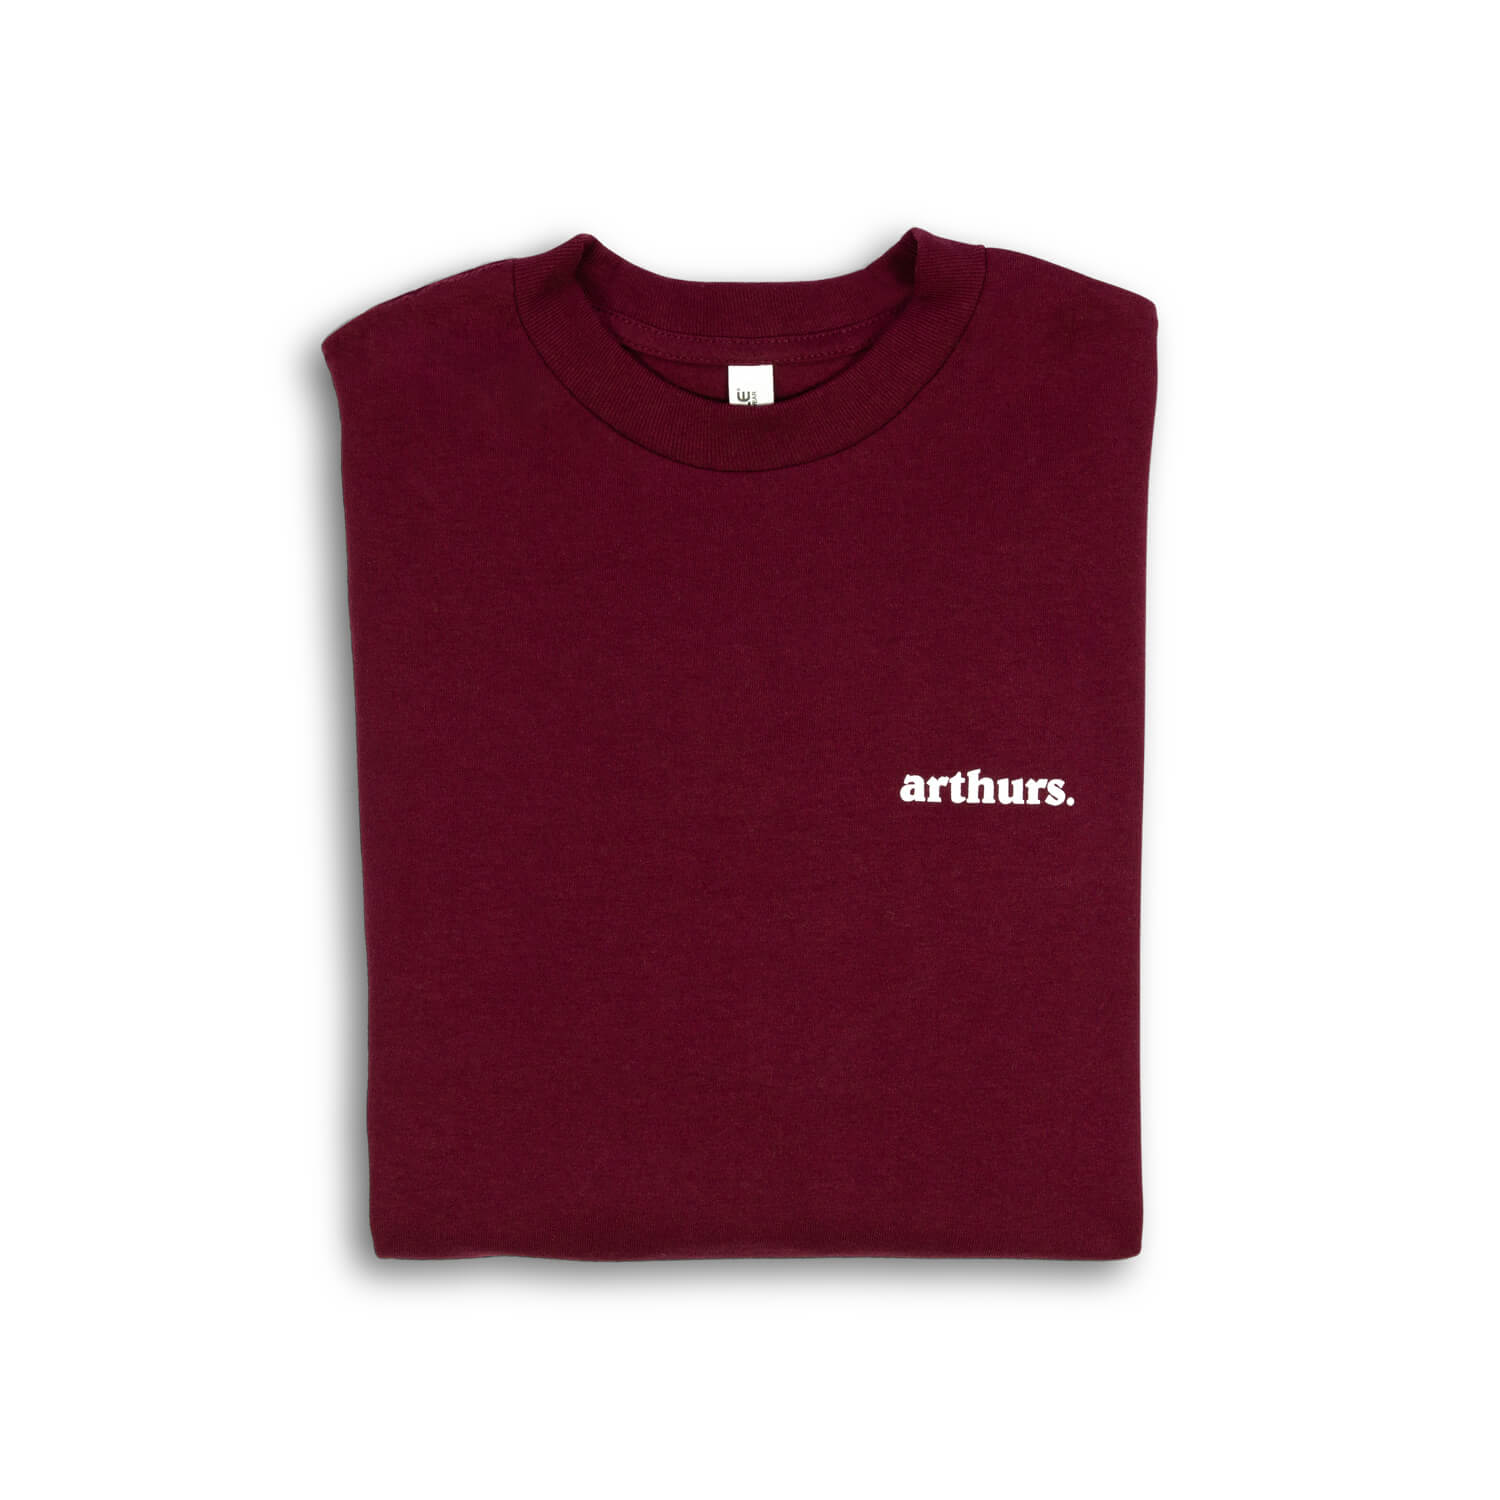 Arthurs Outdoor Edition Longsleeve (Burgundy)